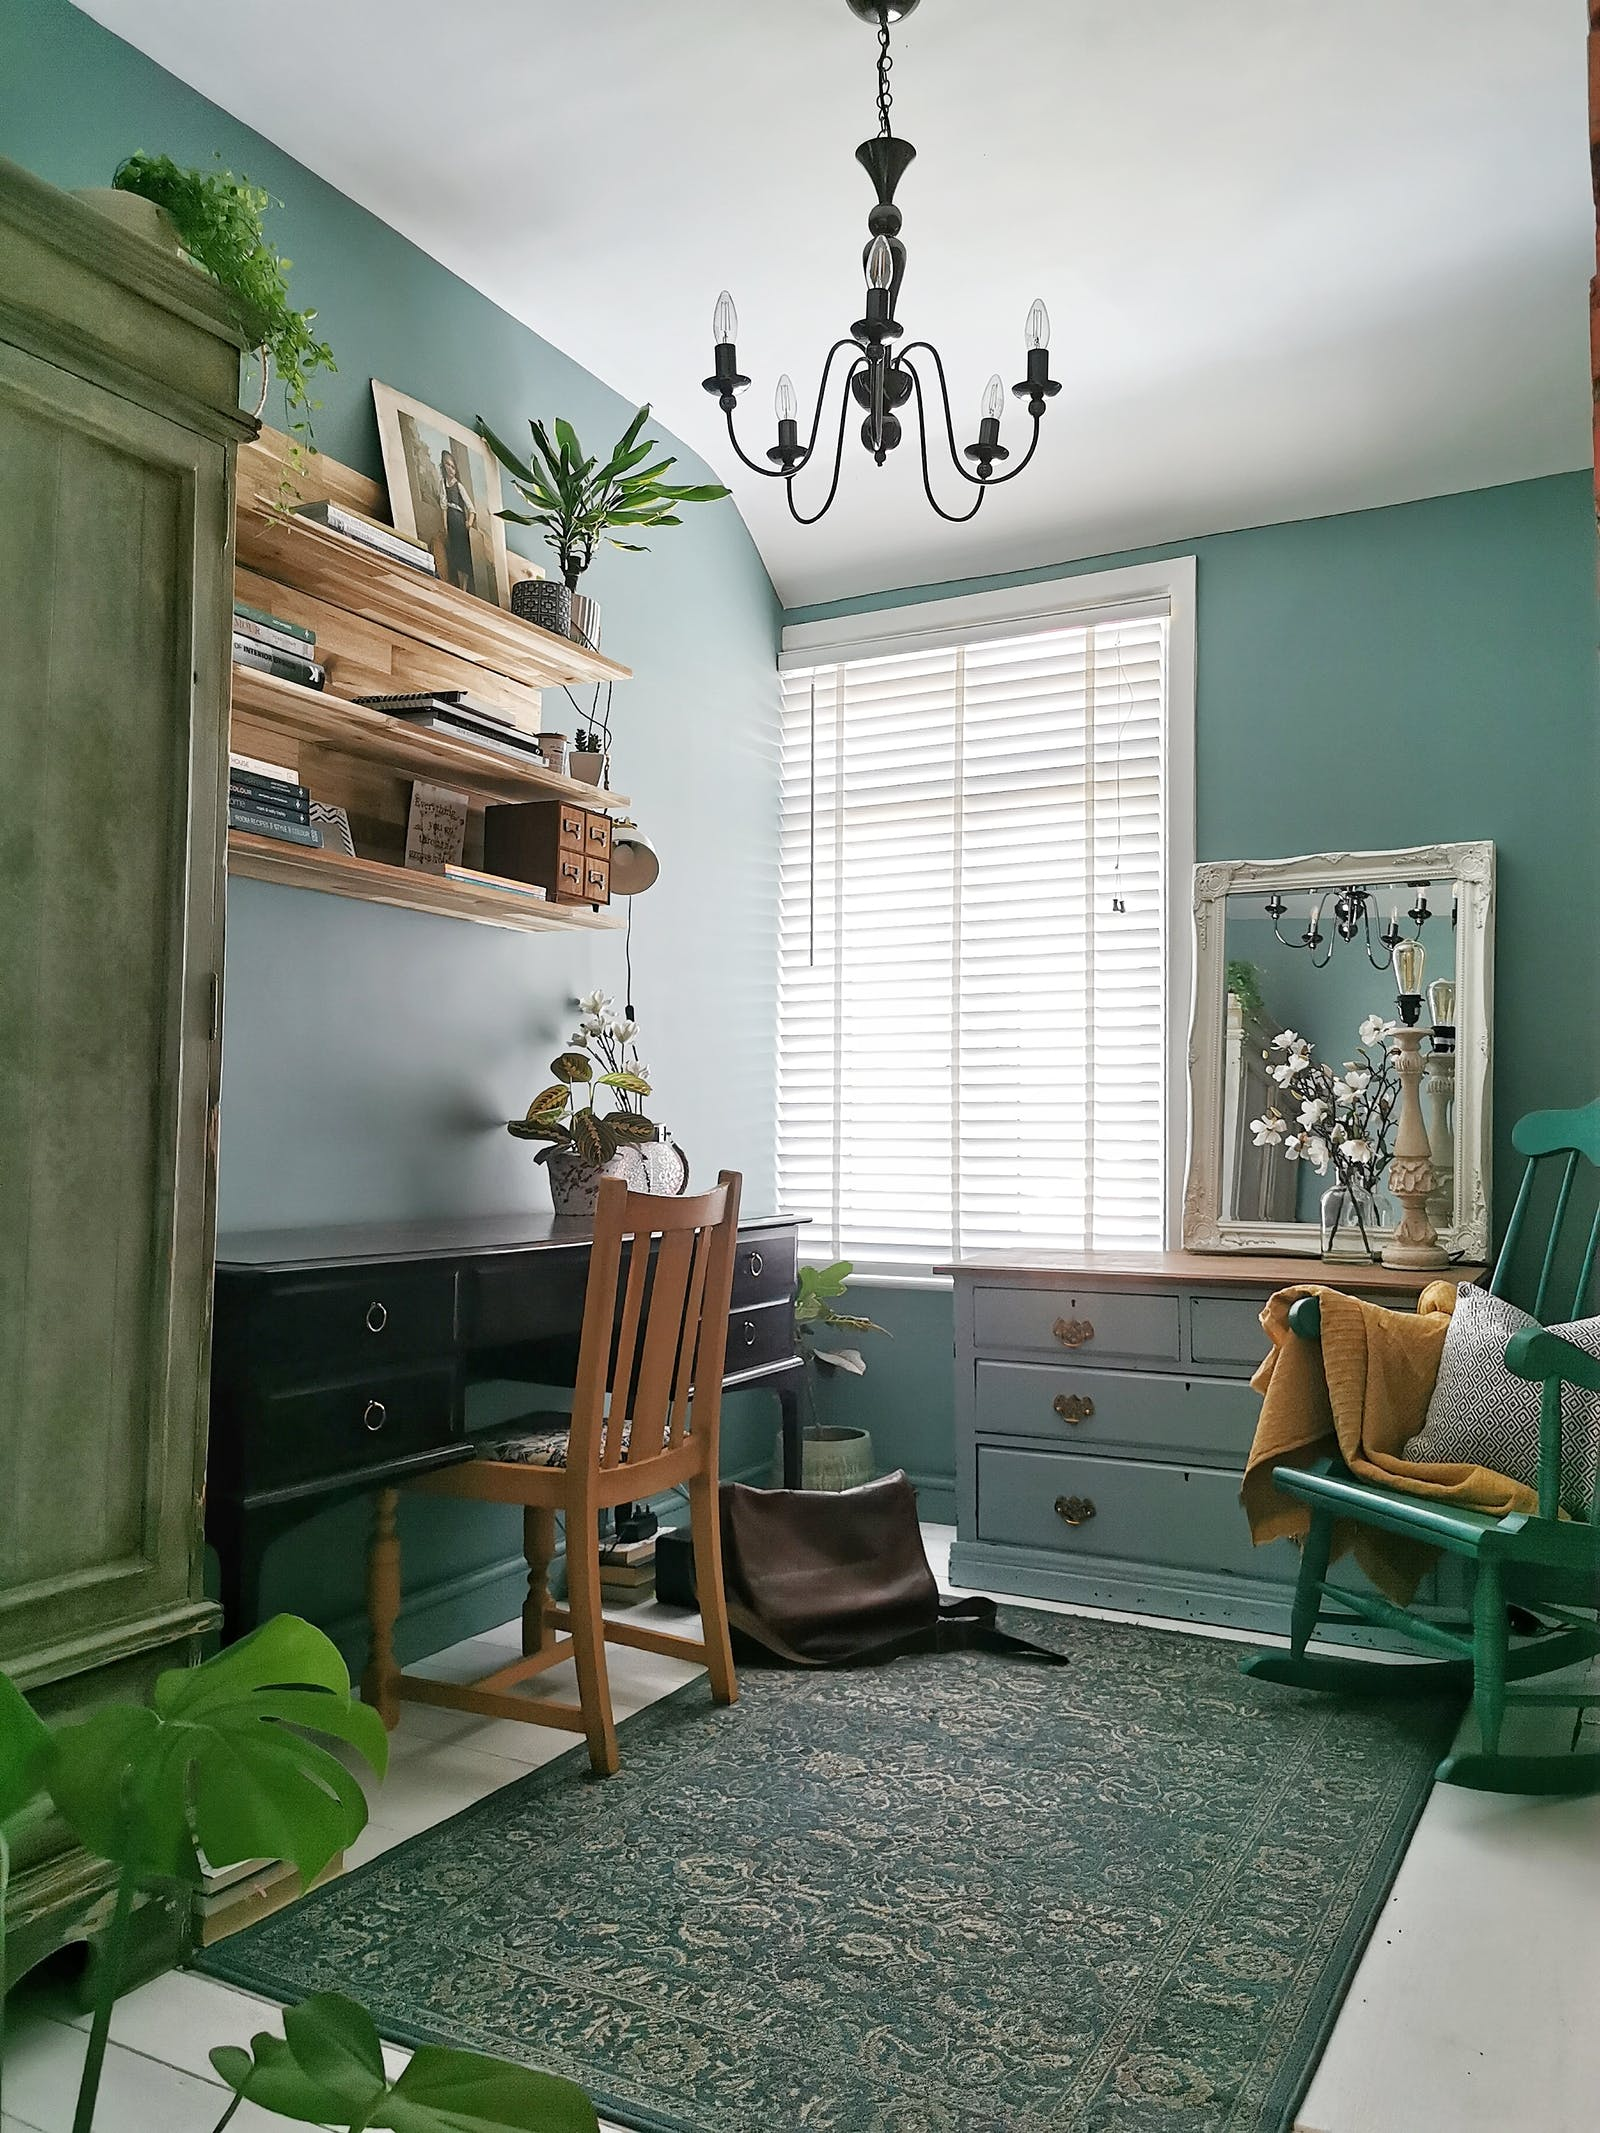 Home office painted in our Teal 01, decorated with wooden chairs and vintage furniture